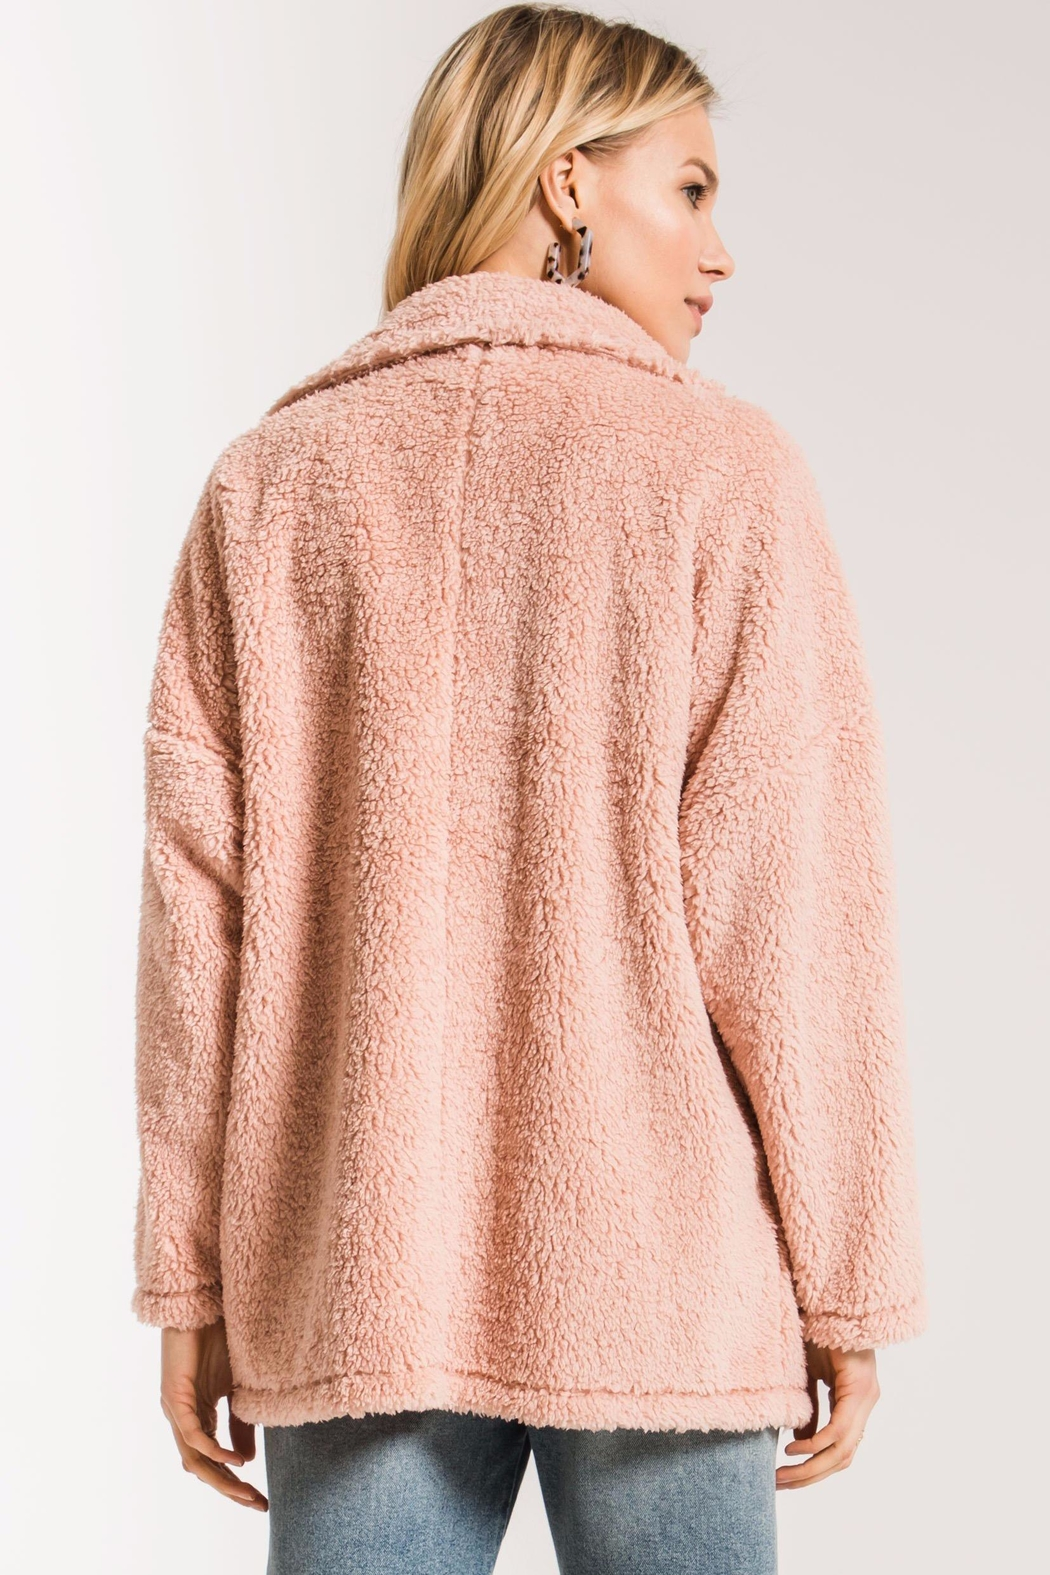 z supply Teddy Bear Coat - Back Cropped Image